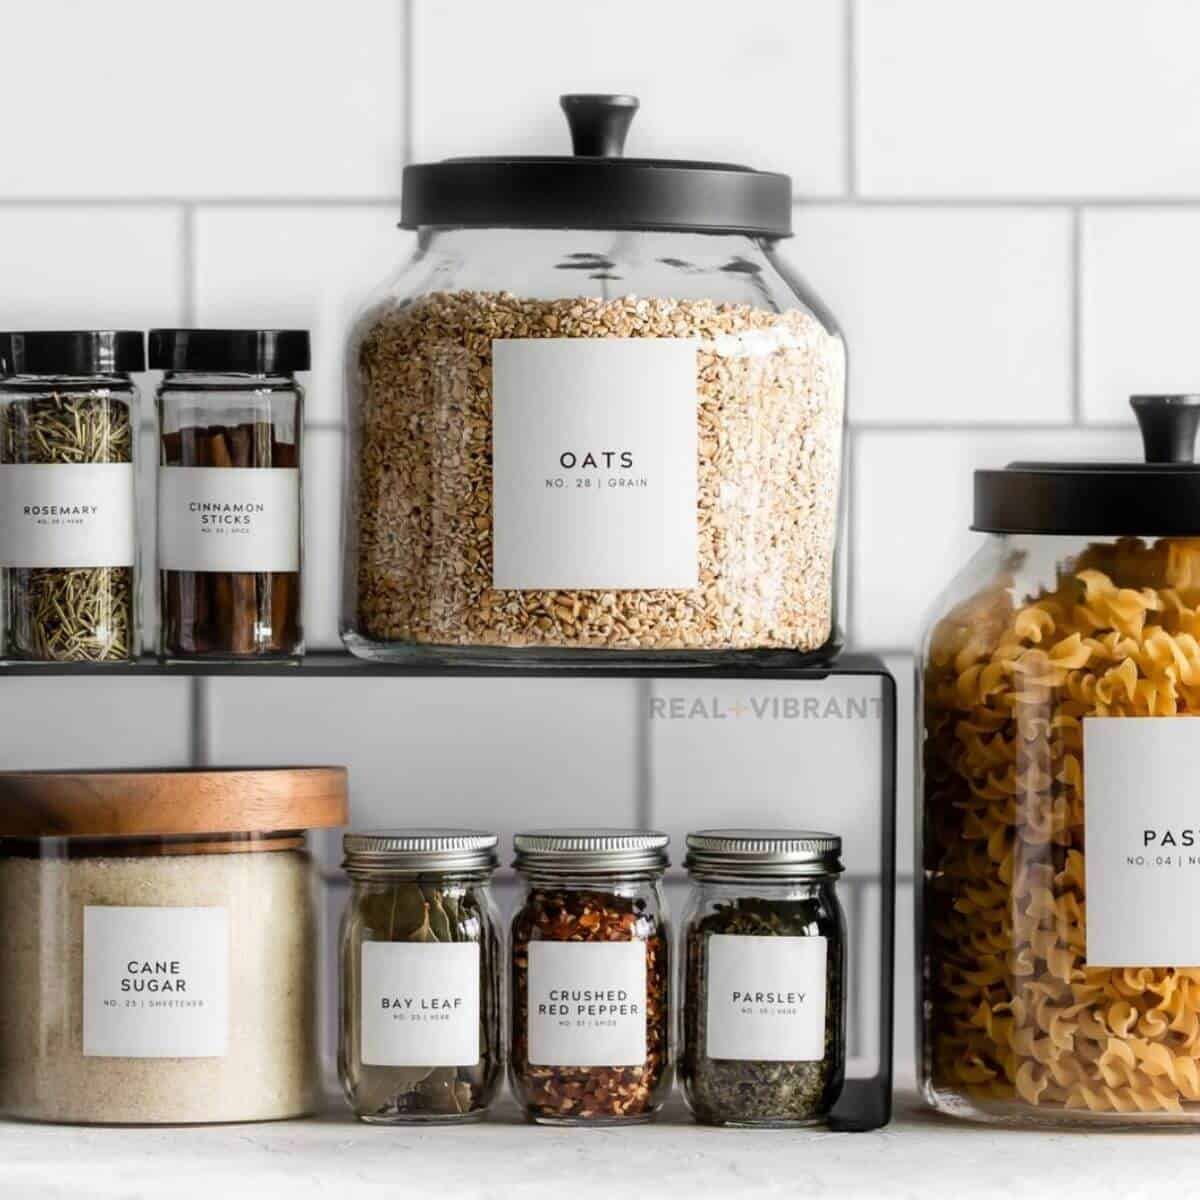 Pantry and spice labels and jars.